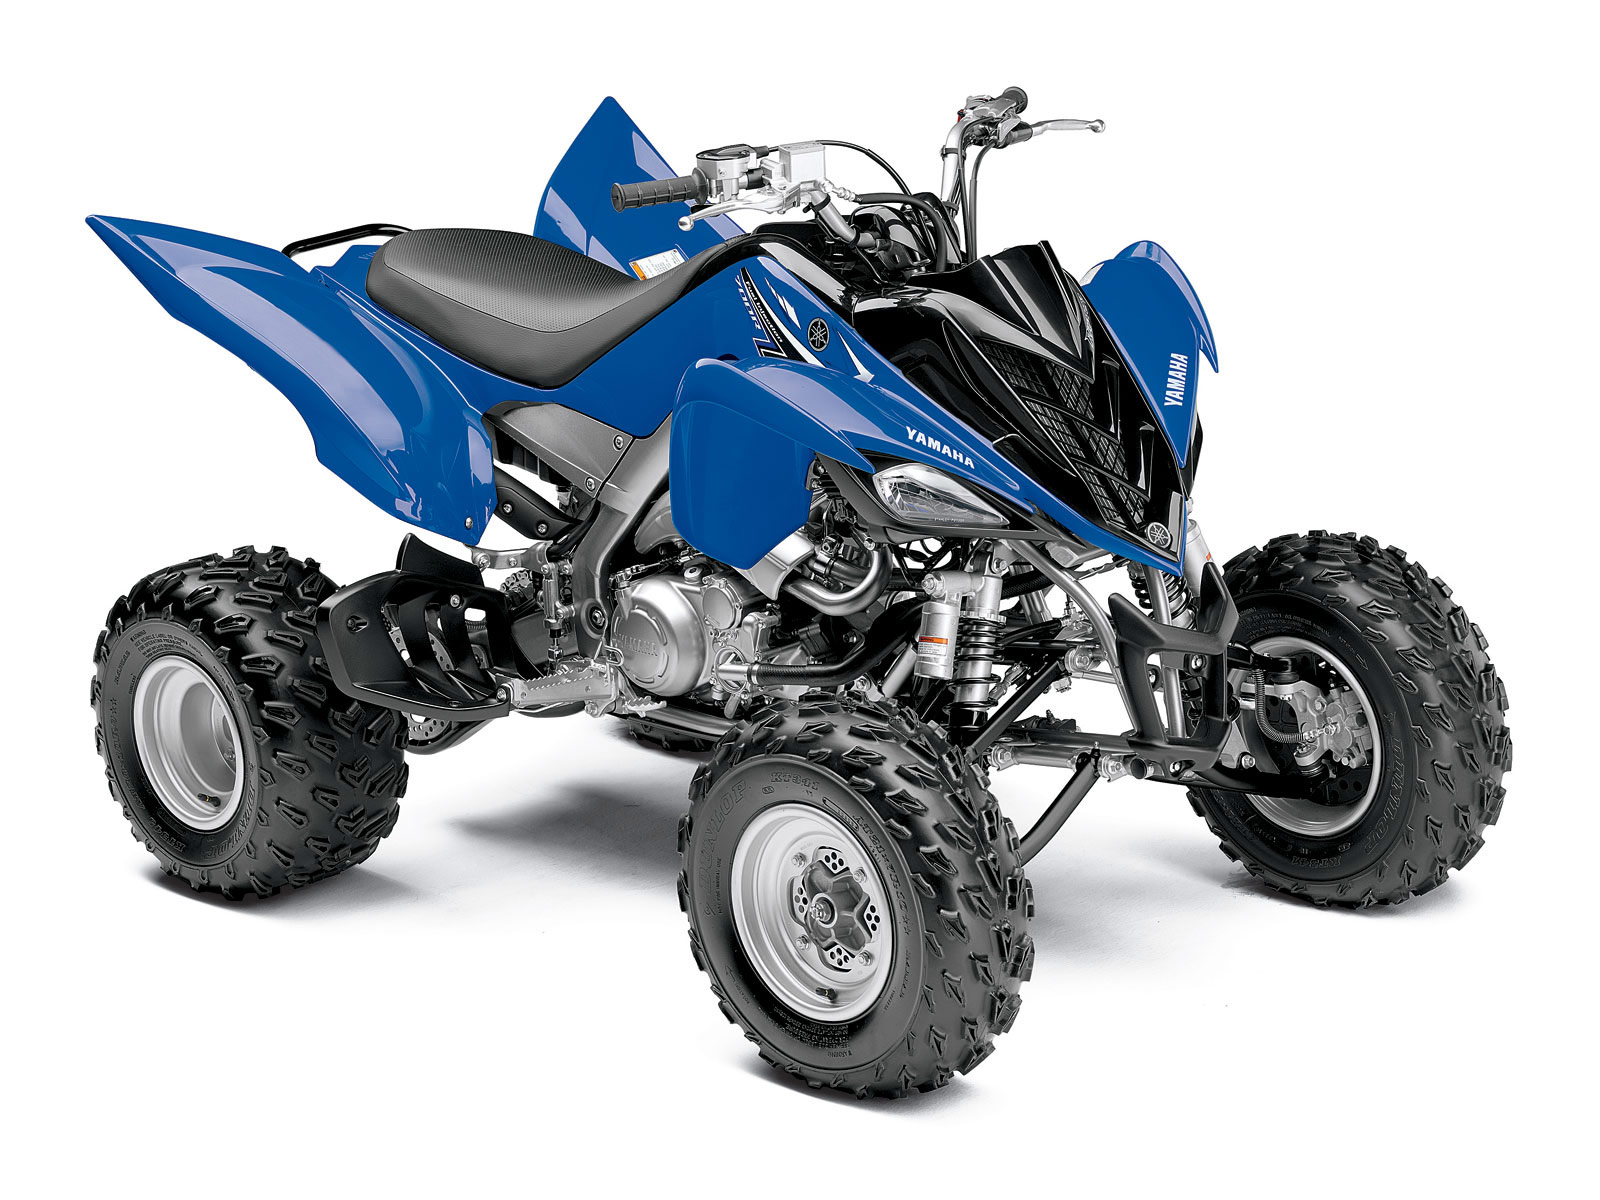 2011 yamaha raptor 700r pictures atv accident lawyers info. Black Bedroom Furniture Sets. Home Design Ideas